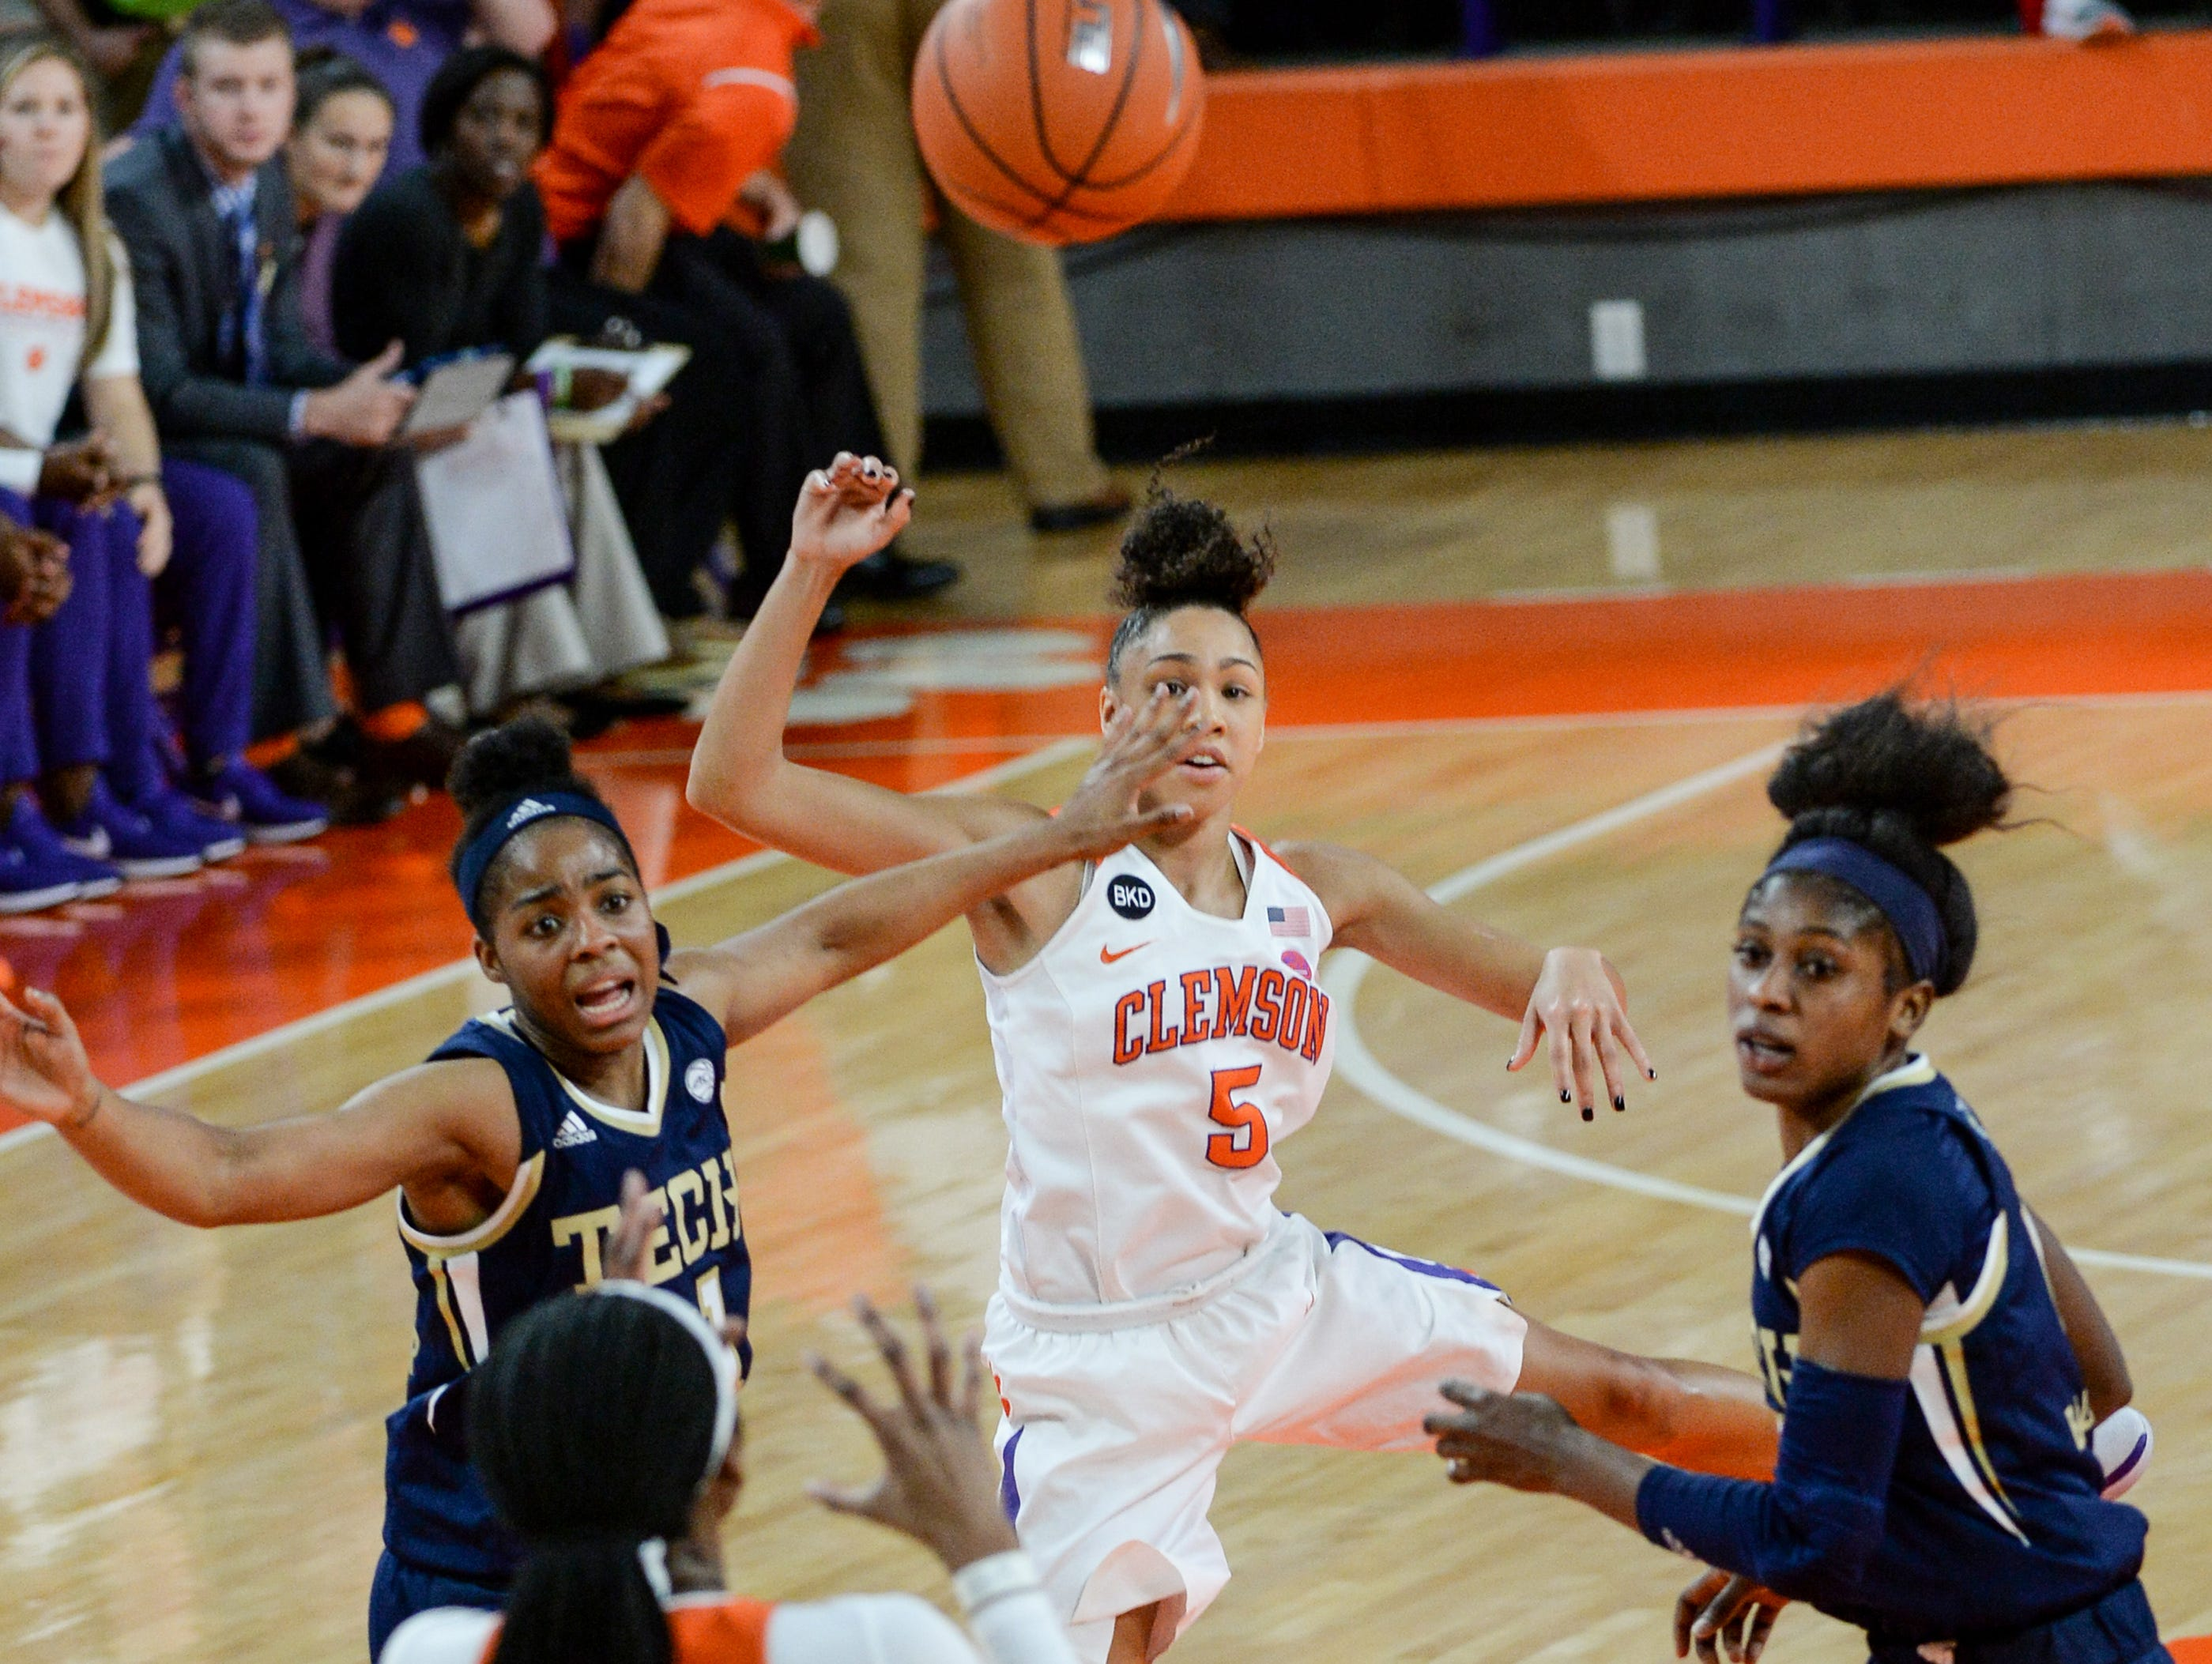 Clemson guard Danielle Edwards(5) passes to Clemson center Kobi Thornton(44) playing Georgia Tech during the first quarter at Littlejohn Coliseum in Clemson Thursday, January 17, 2019.